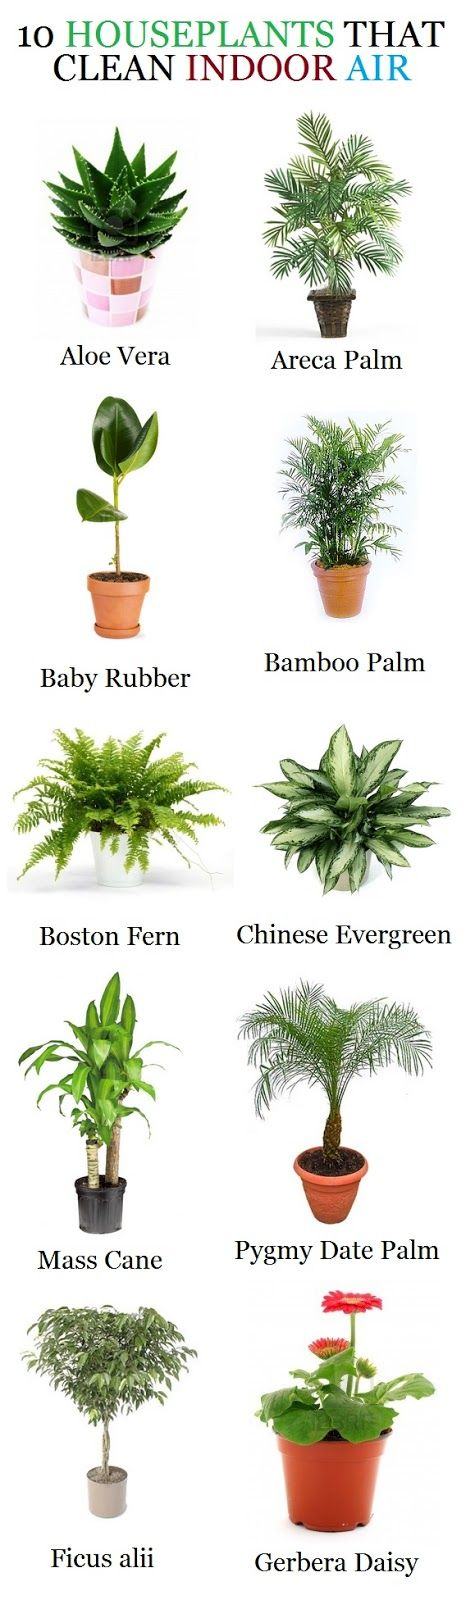 Natural Air Filters. Great during the Haze. 10 HOUSEPLANTS THAT CLEAN INDOOR AIR: